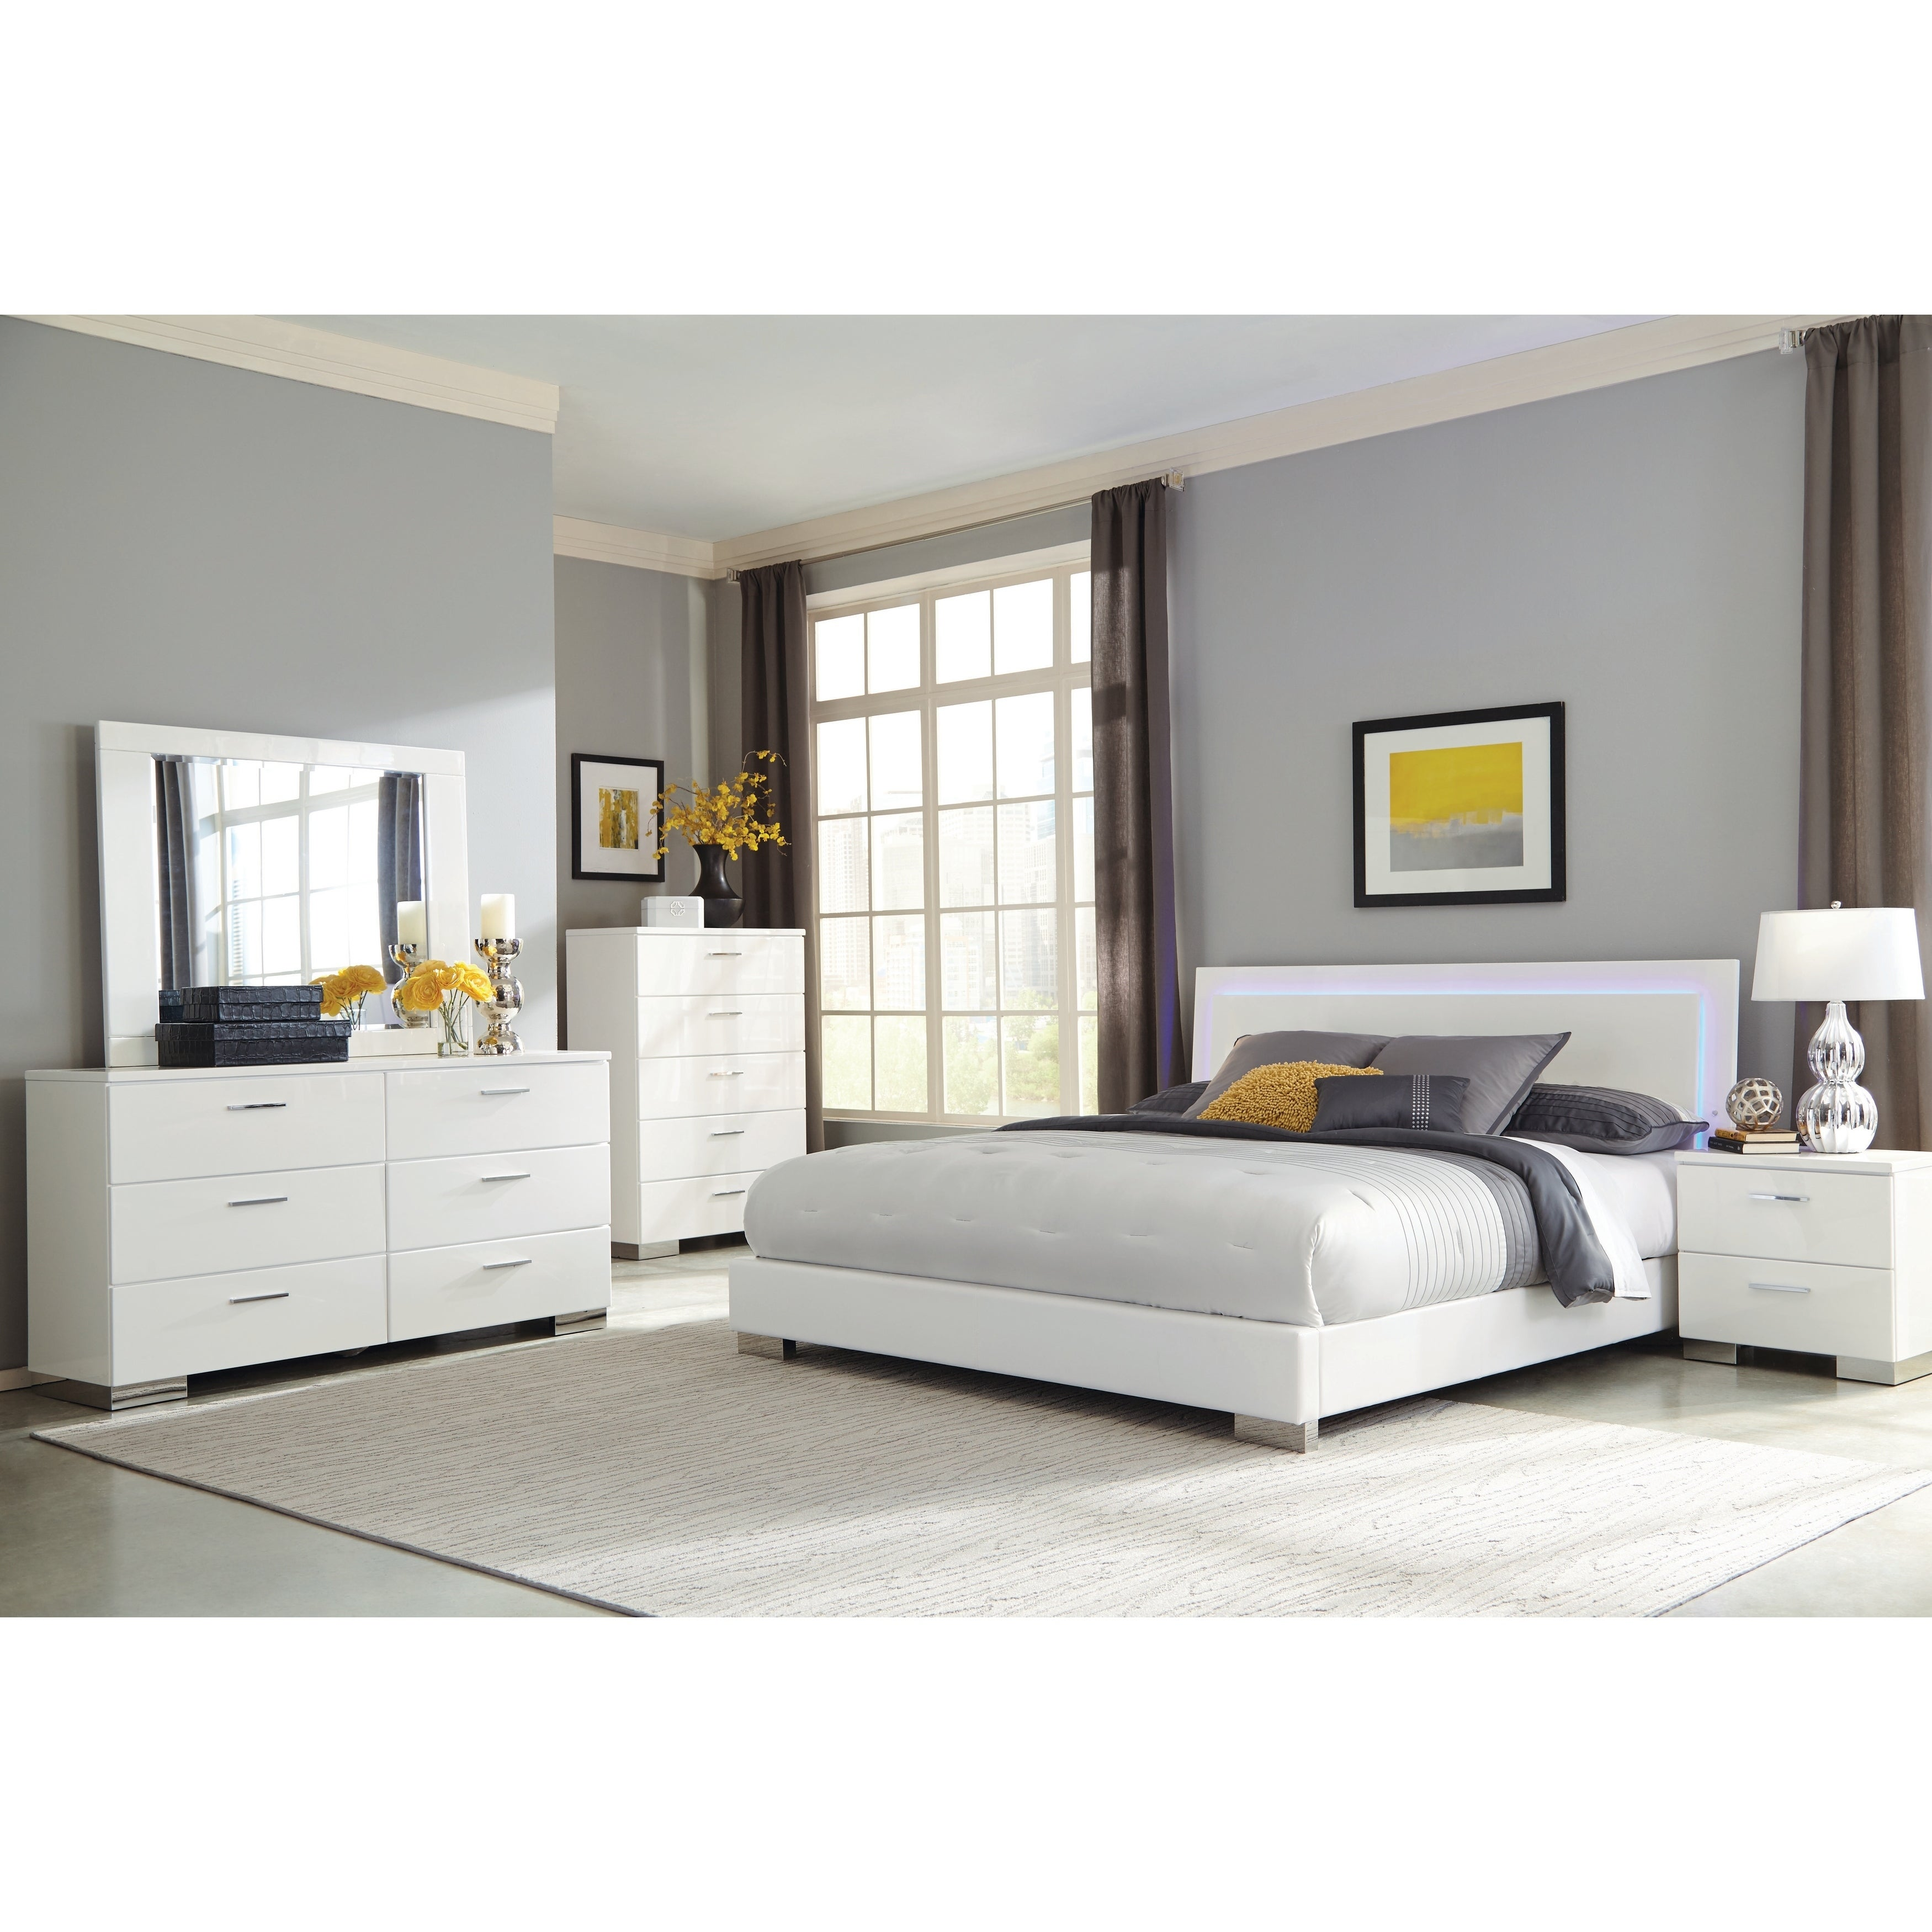 Oliver & James Alice White 4-piece Bedroom Set with LED Headboard